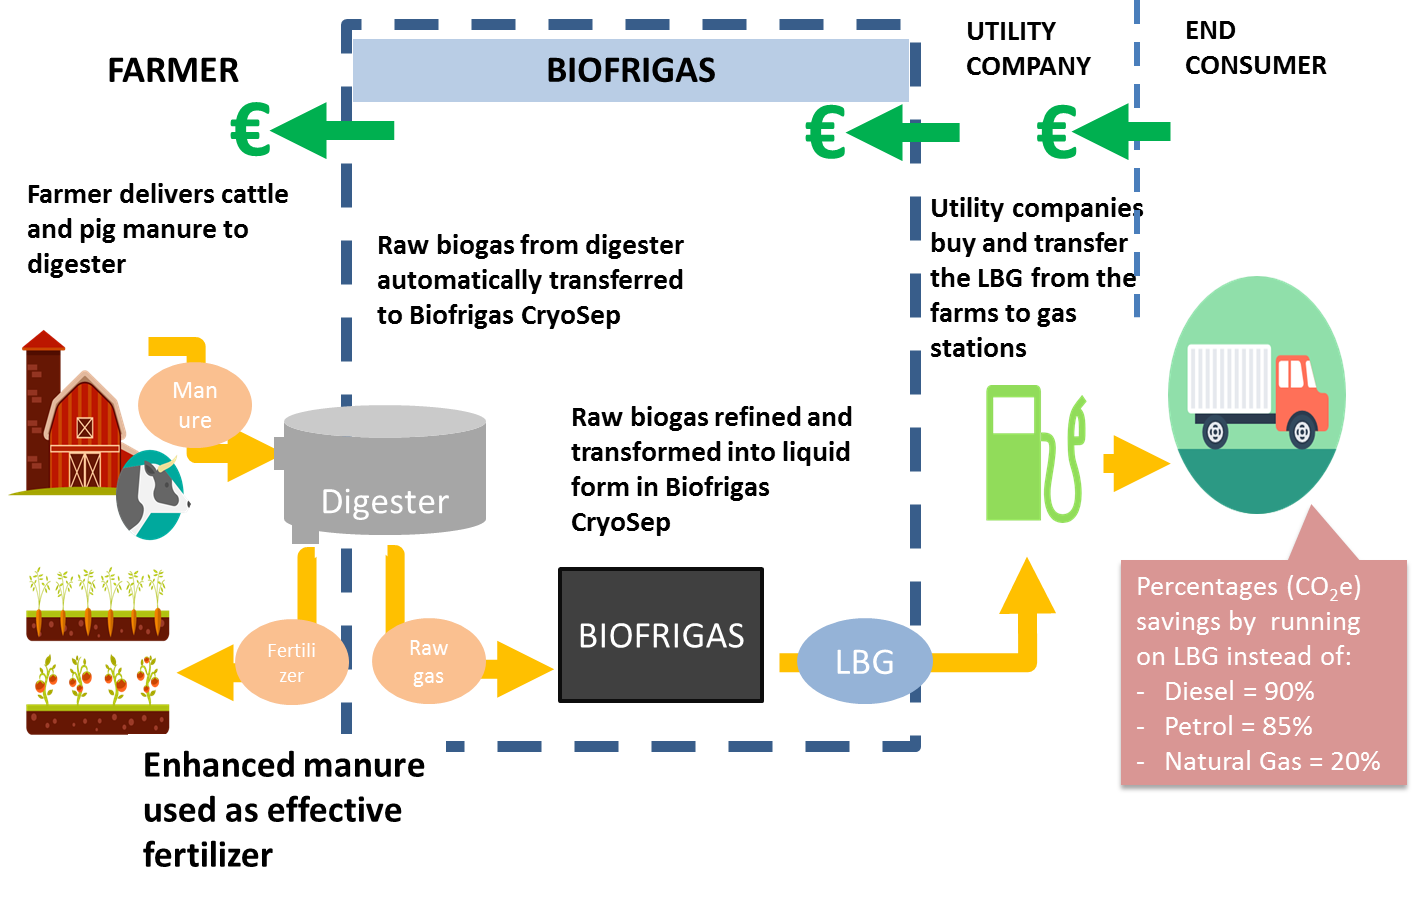 Periodic Reporting for period 1 - Biofrigas (Turning manure